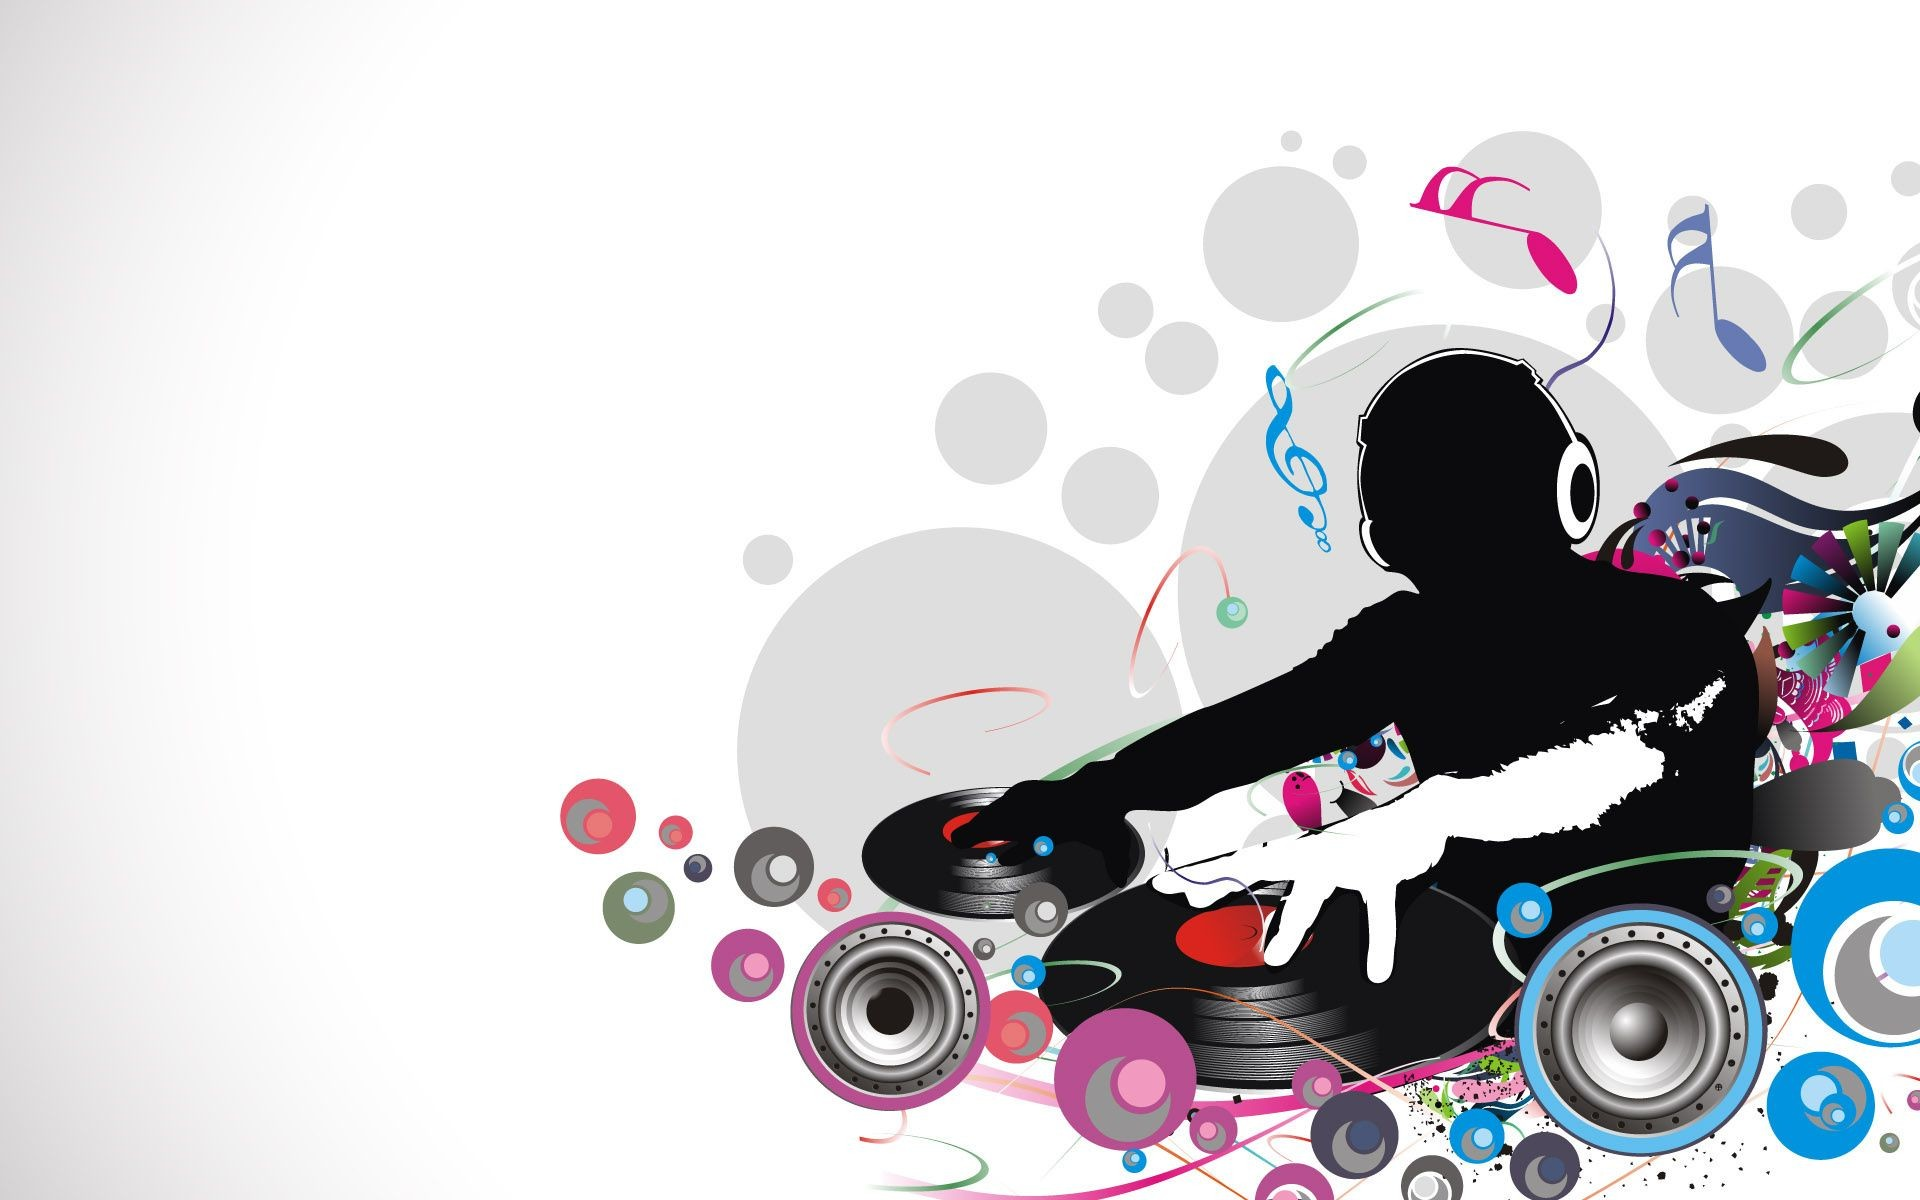 Dj Background Design Png (#1665404).